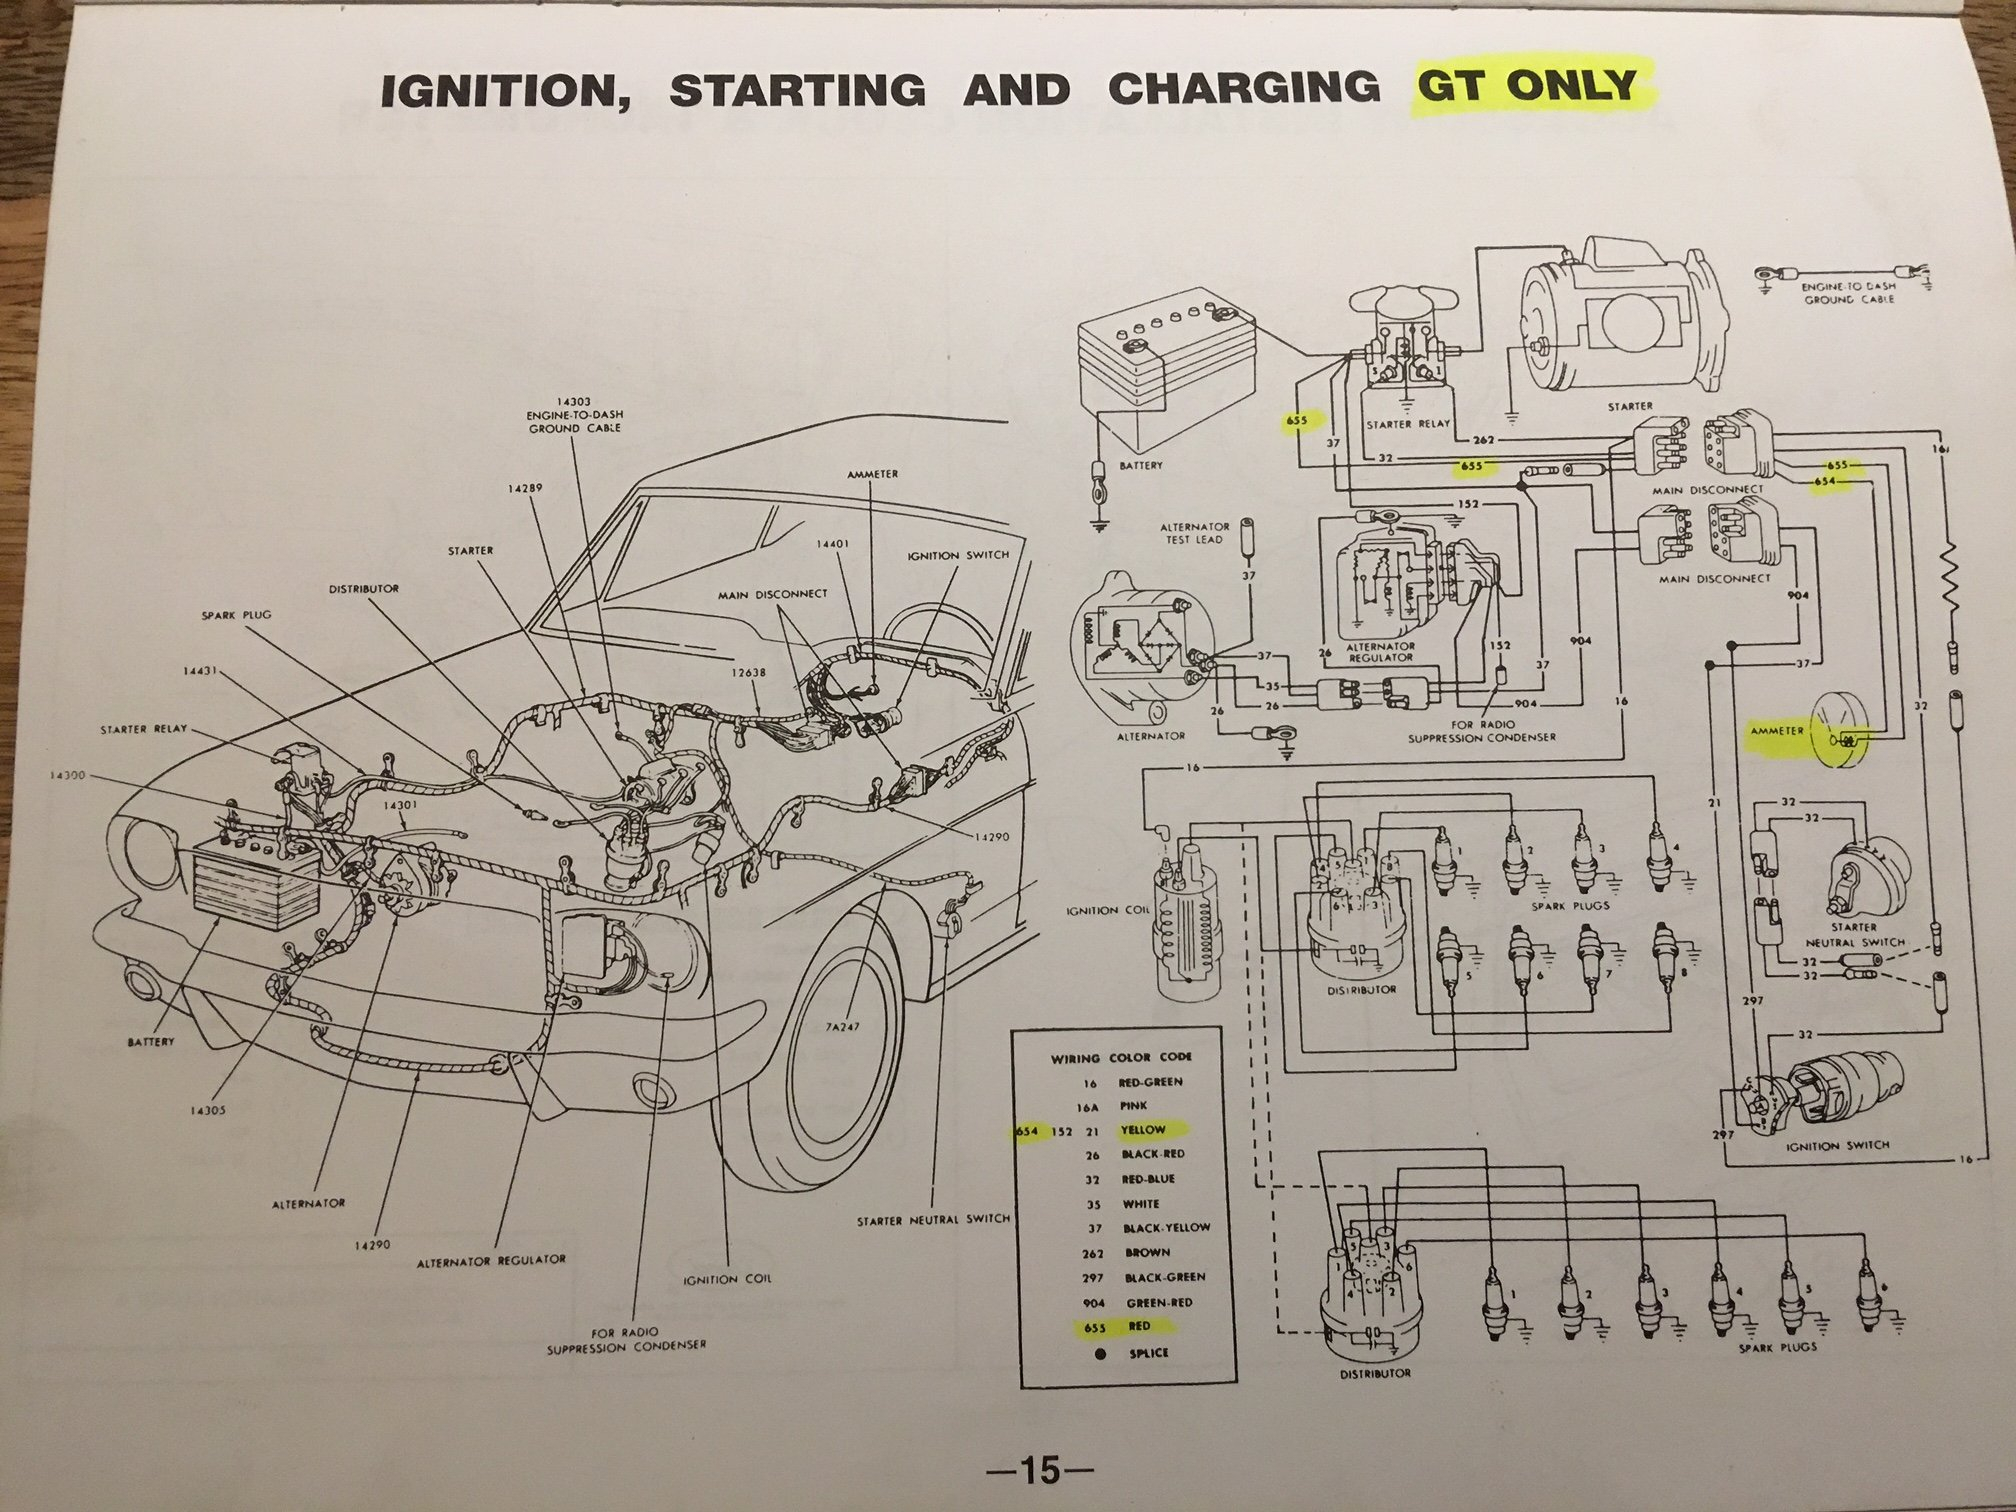 [FPWZ_2684]  65 GT: Ammeter pegged, and mystery white/black wire | Ford Mustang Forum | Induction Amp Meter Wiring Diagram Ford |  | All Ford Mustangs